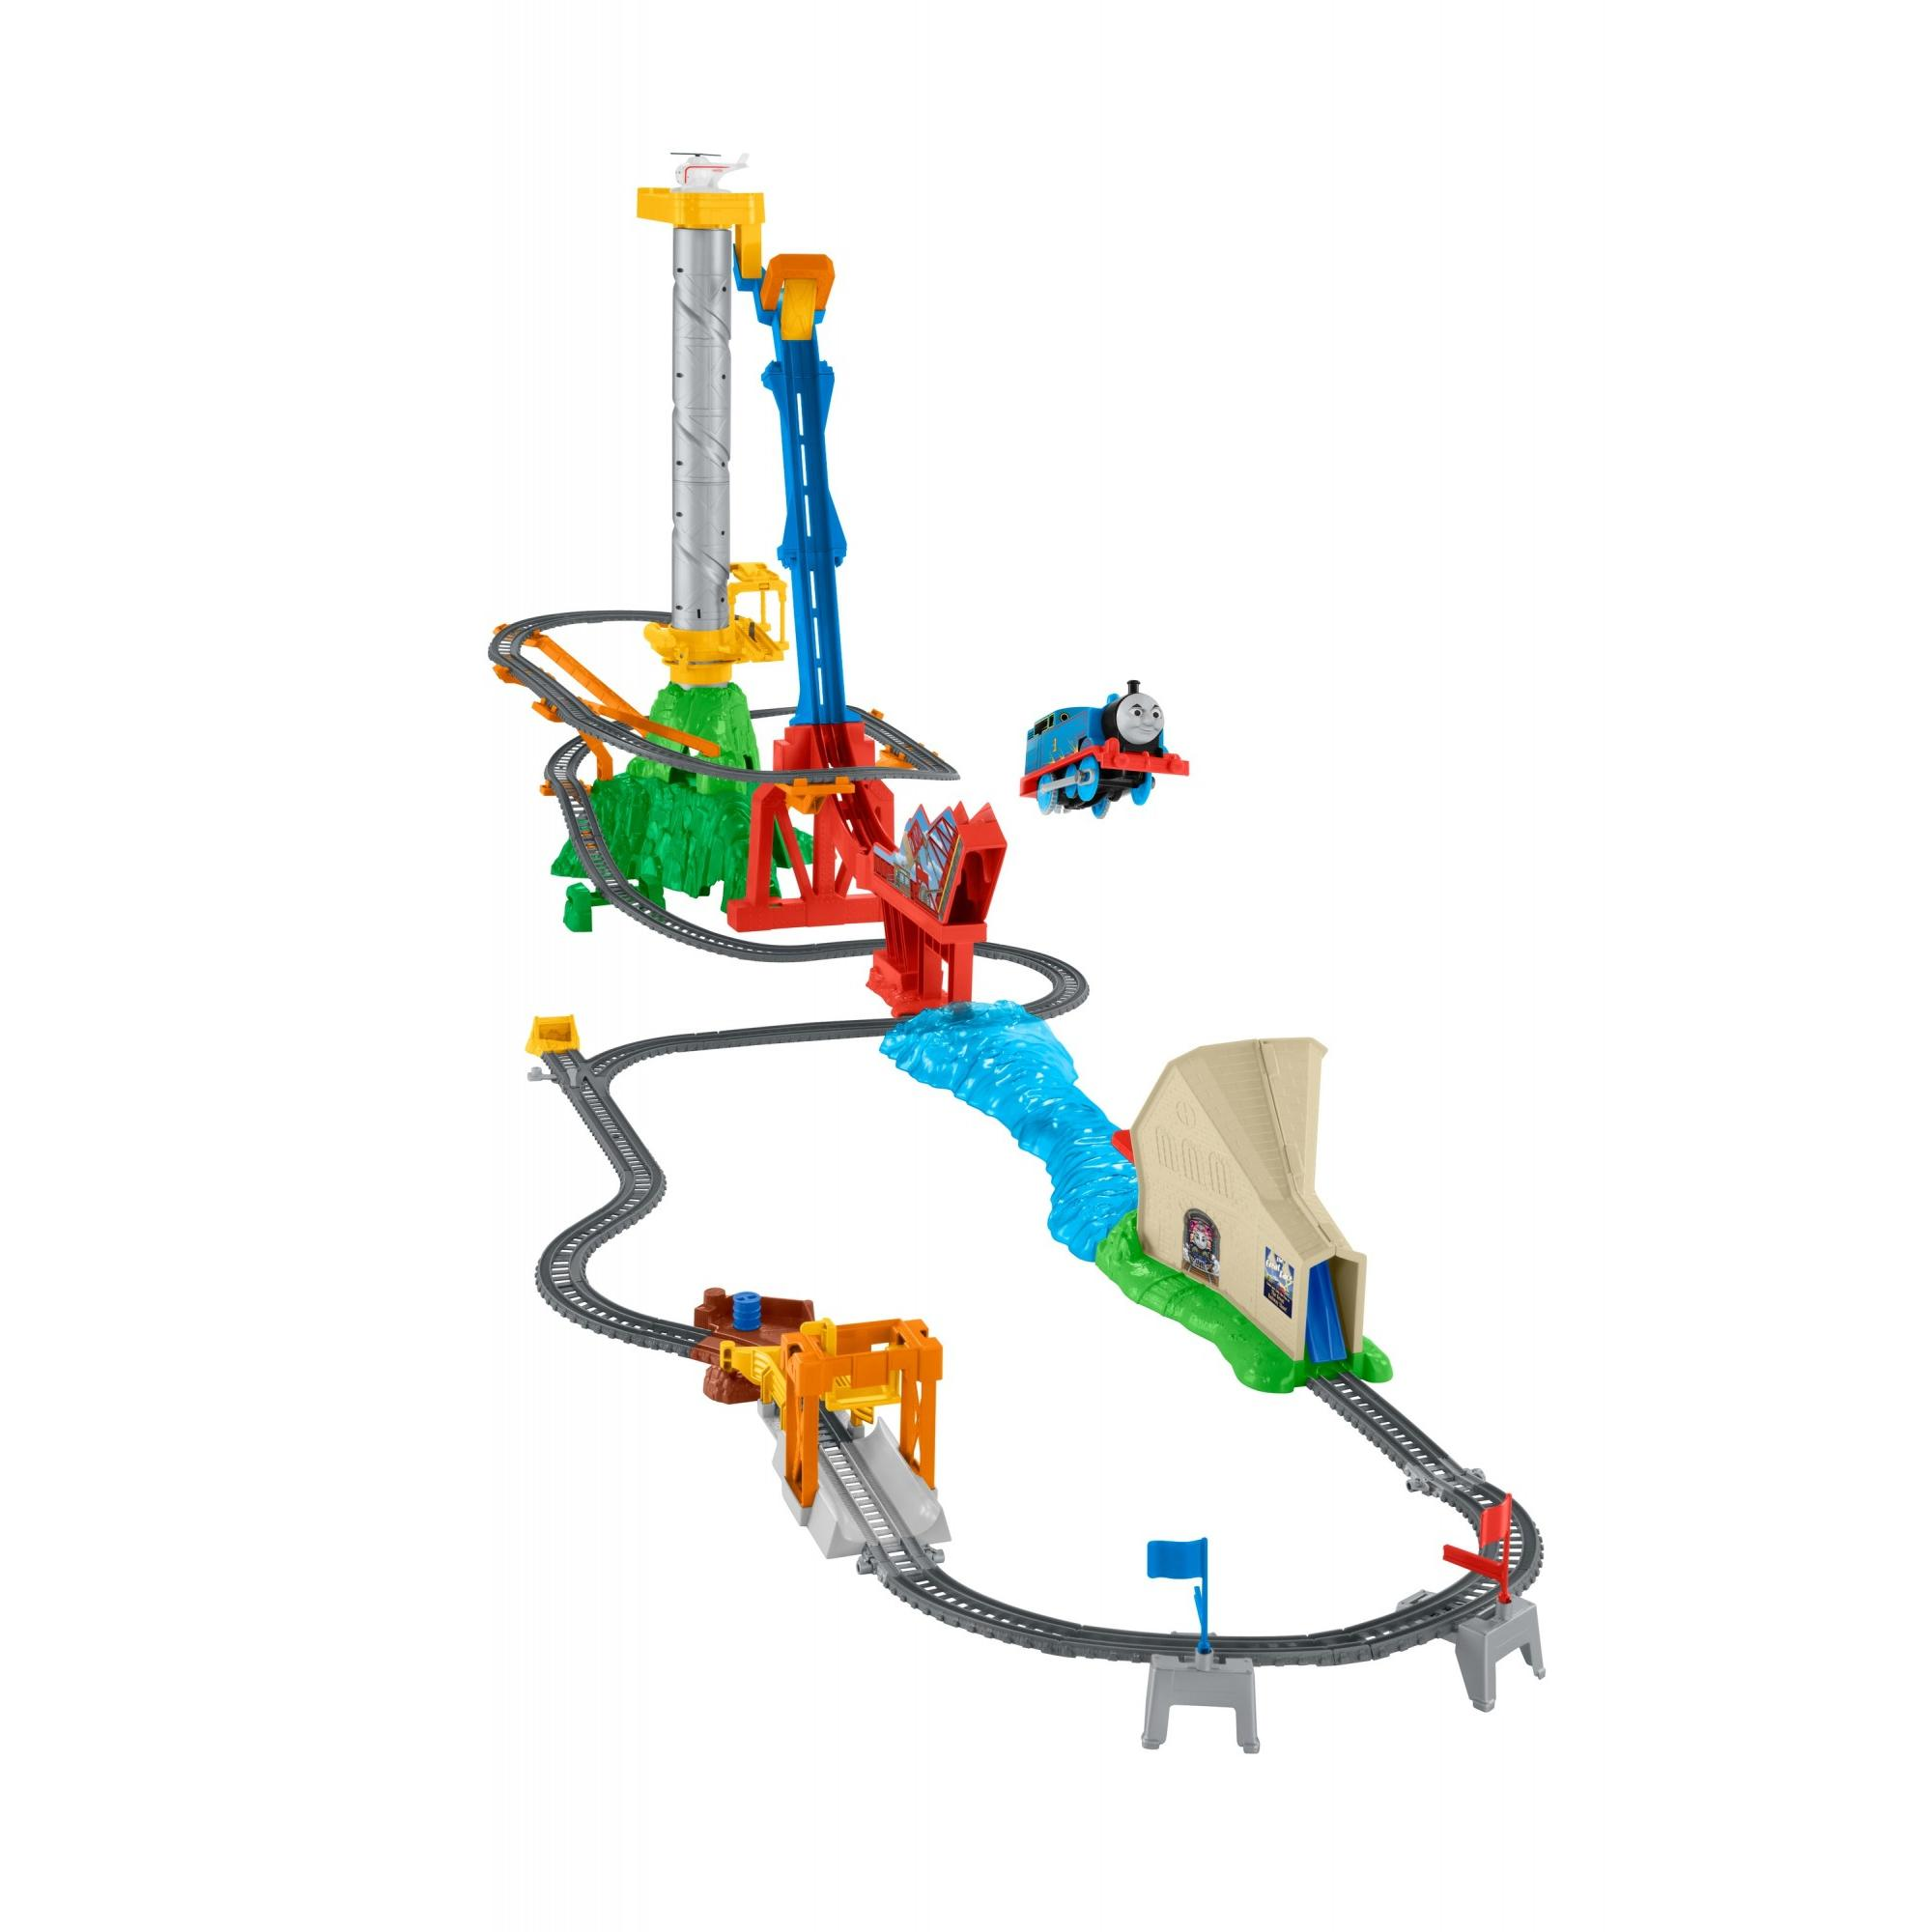 Fisher Price Thomas & Friends TrackMaster Thomas' Sky-High Bridge Jump Train by Thomas %26 Friends